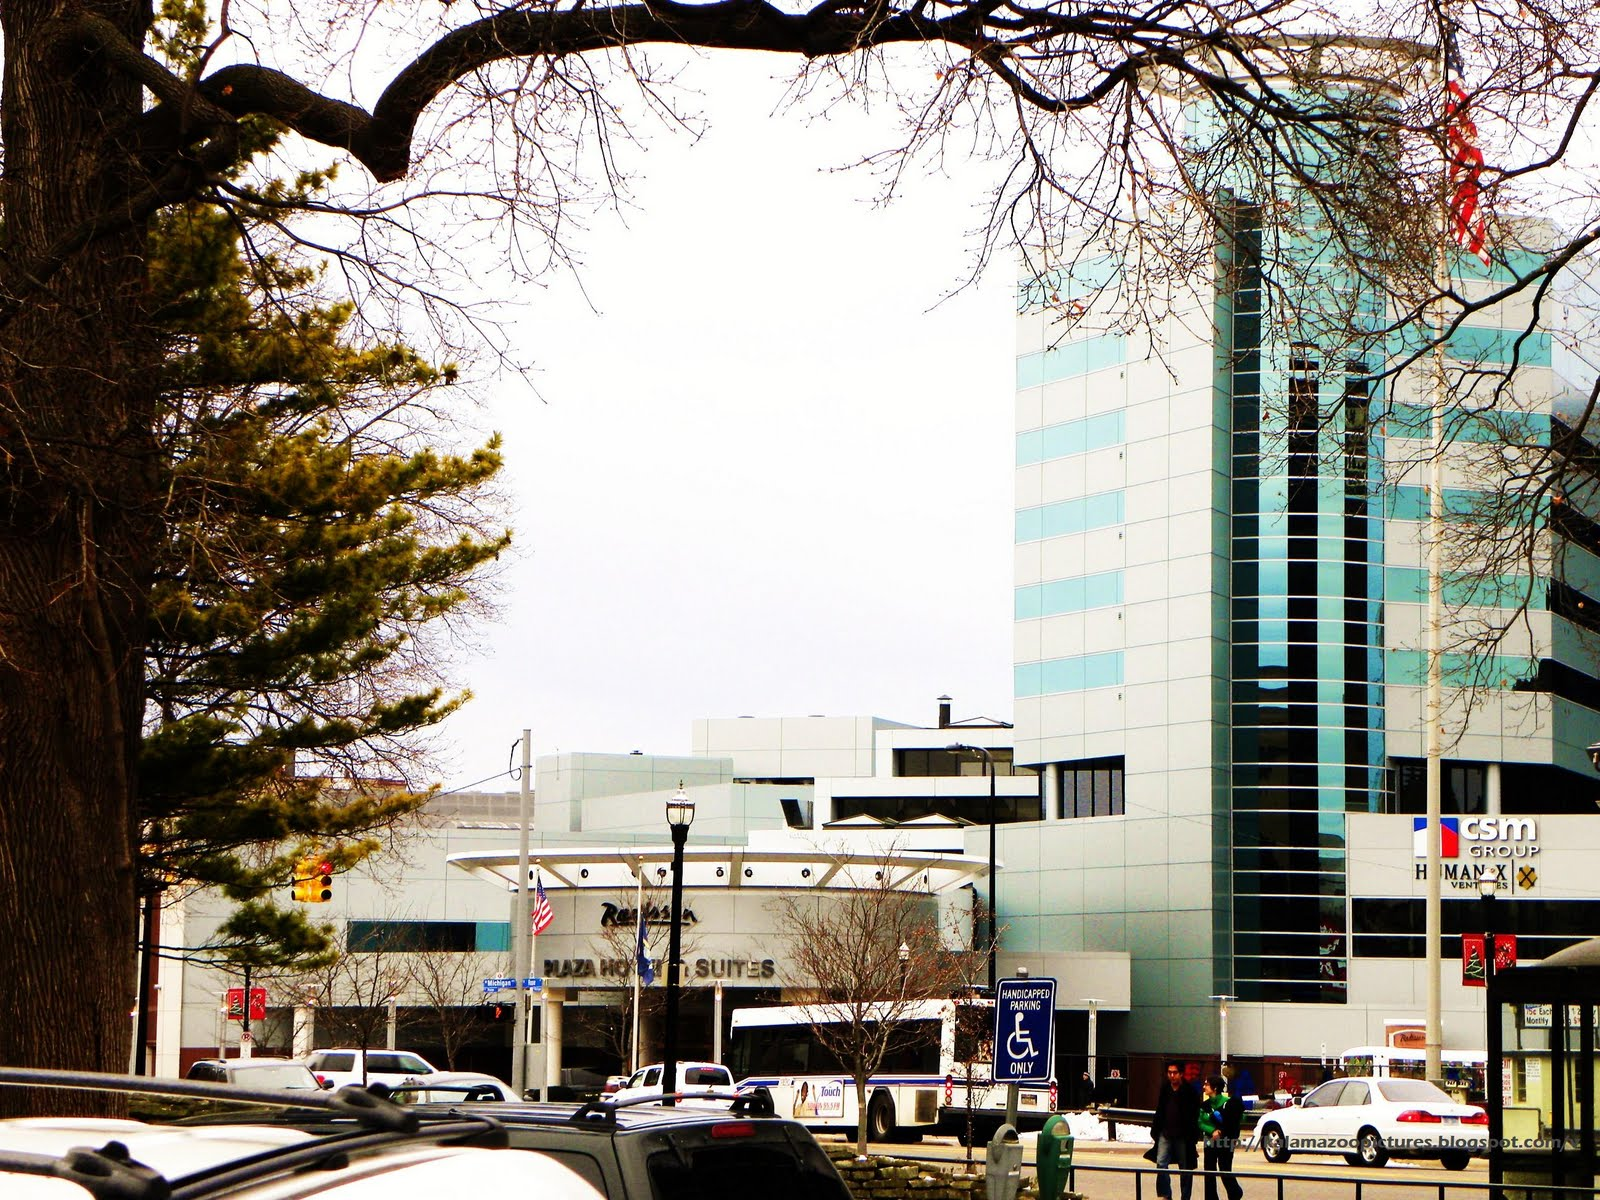 A Main Attraction And One Of The Most Beautiful Prominent Buildings Downtown Kalamazoo Is Hotel Radisson Plaza It Located On 100 West Michigan